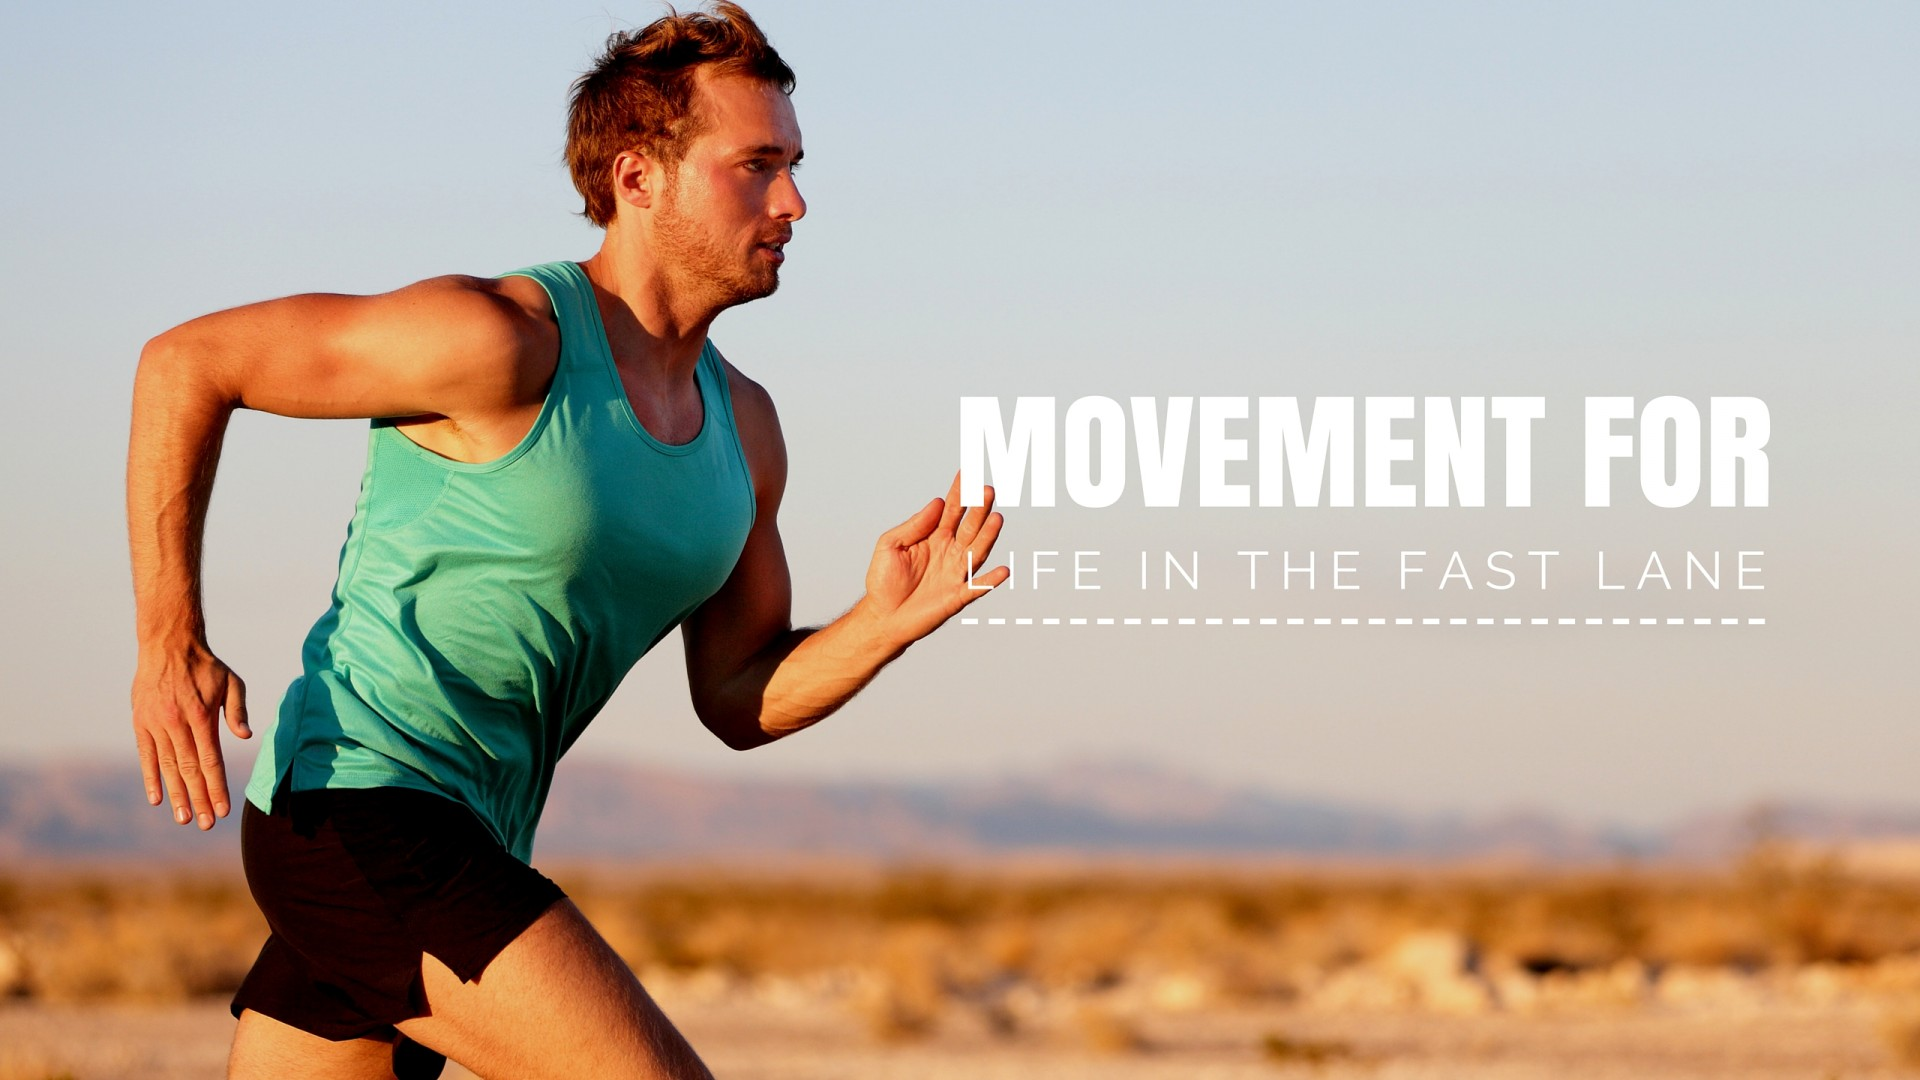 Movement for life in the fast lane